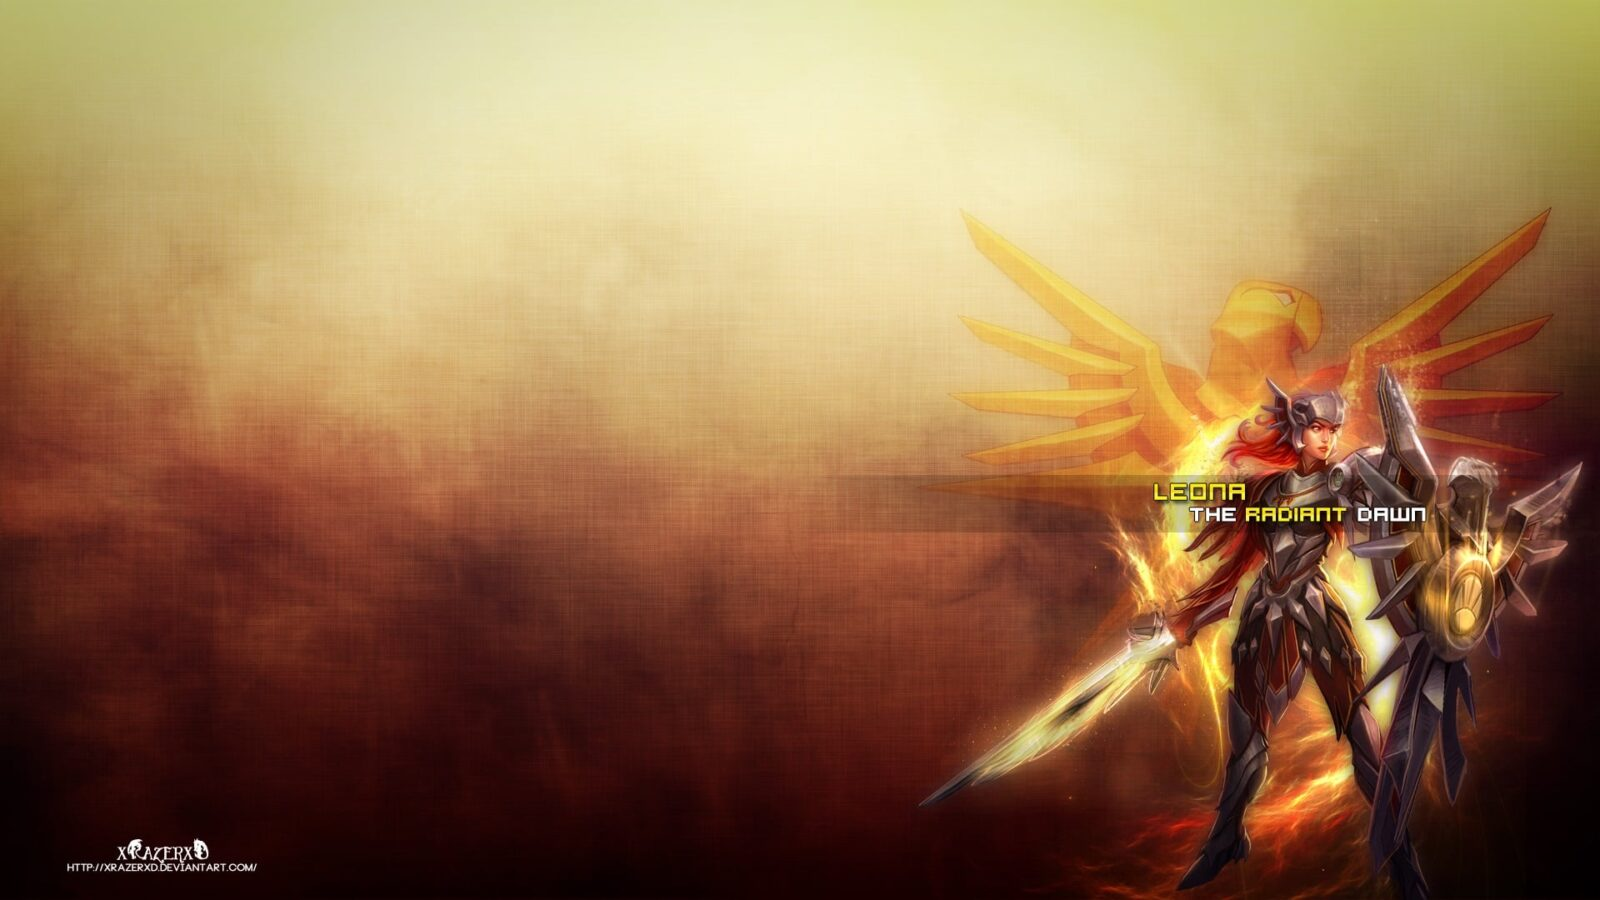 Leona New Wallpapers Hd Image 14